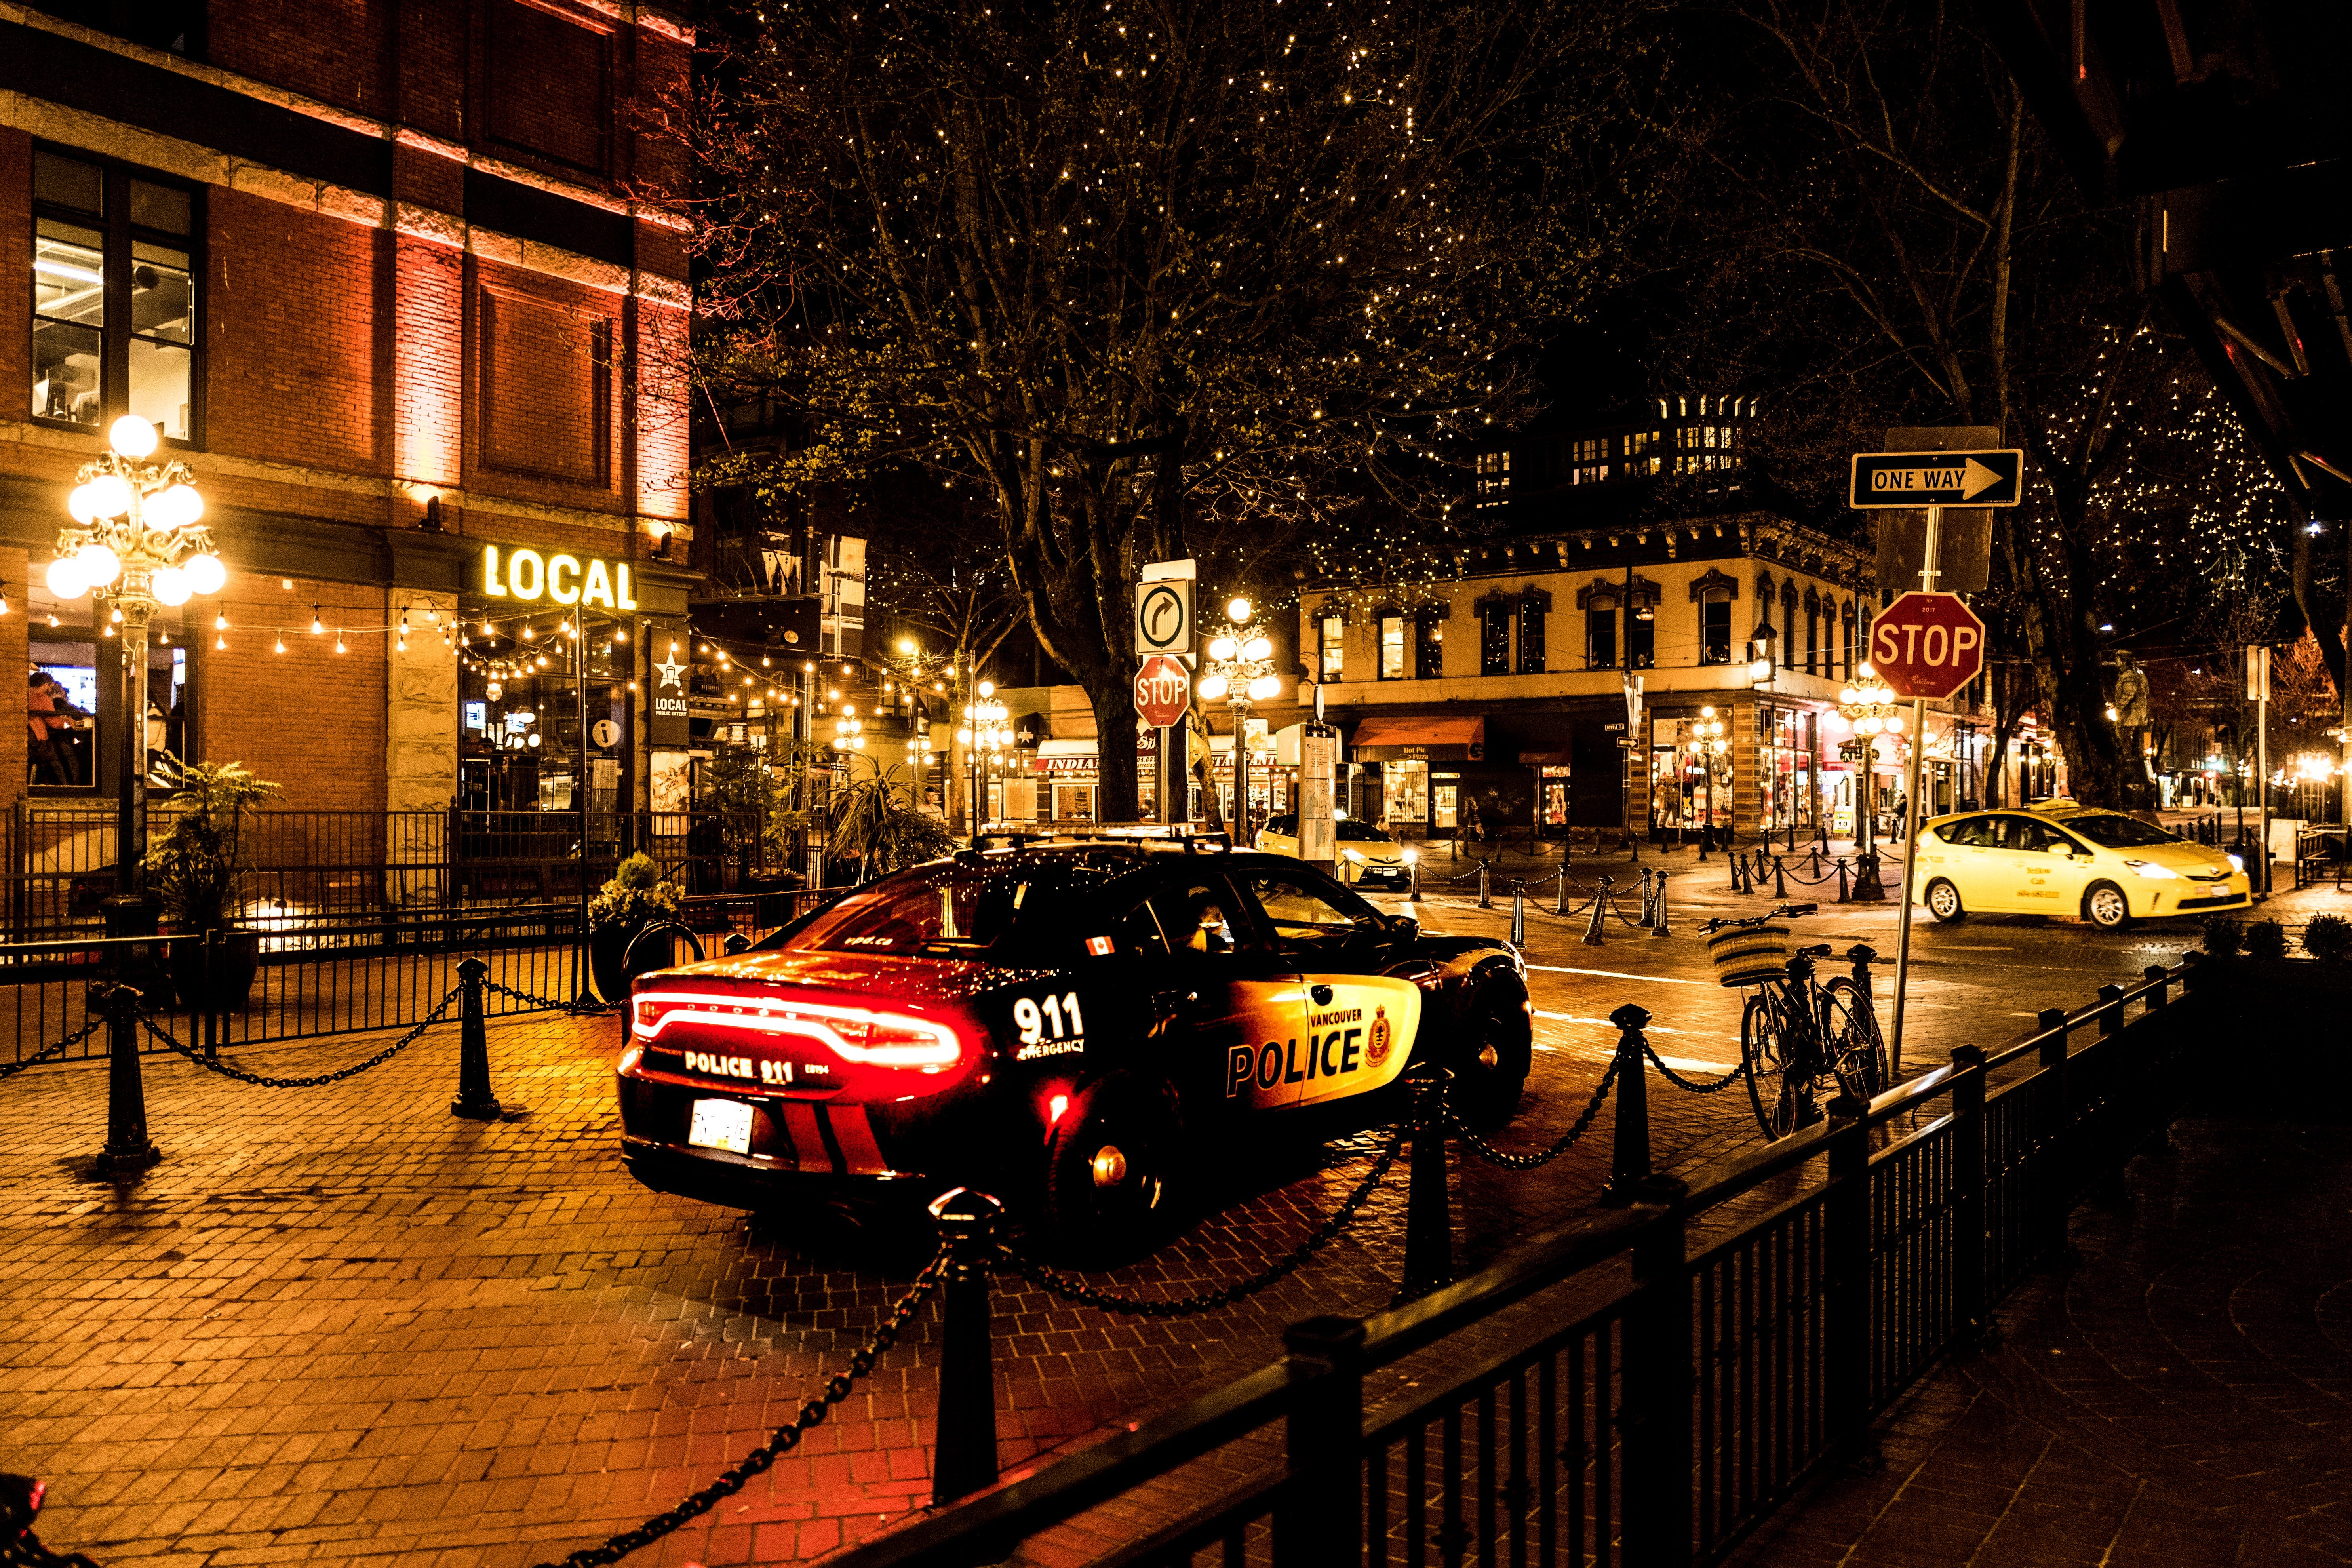 Photography of Police Car During Night Time